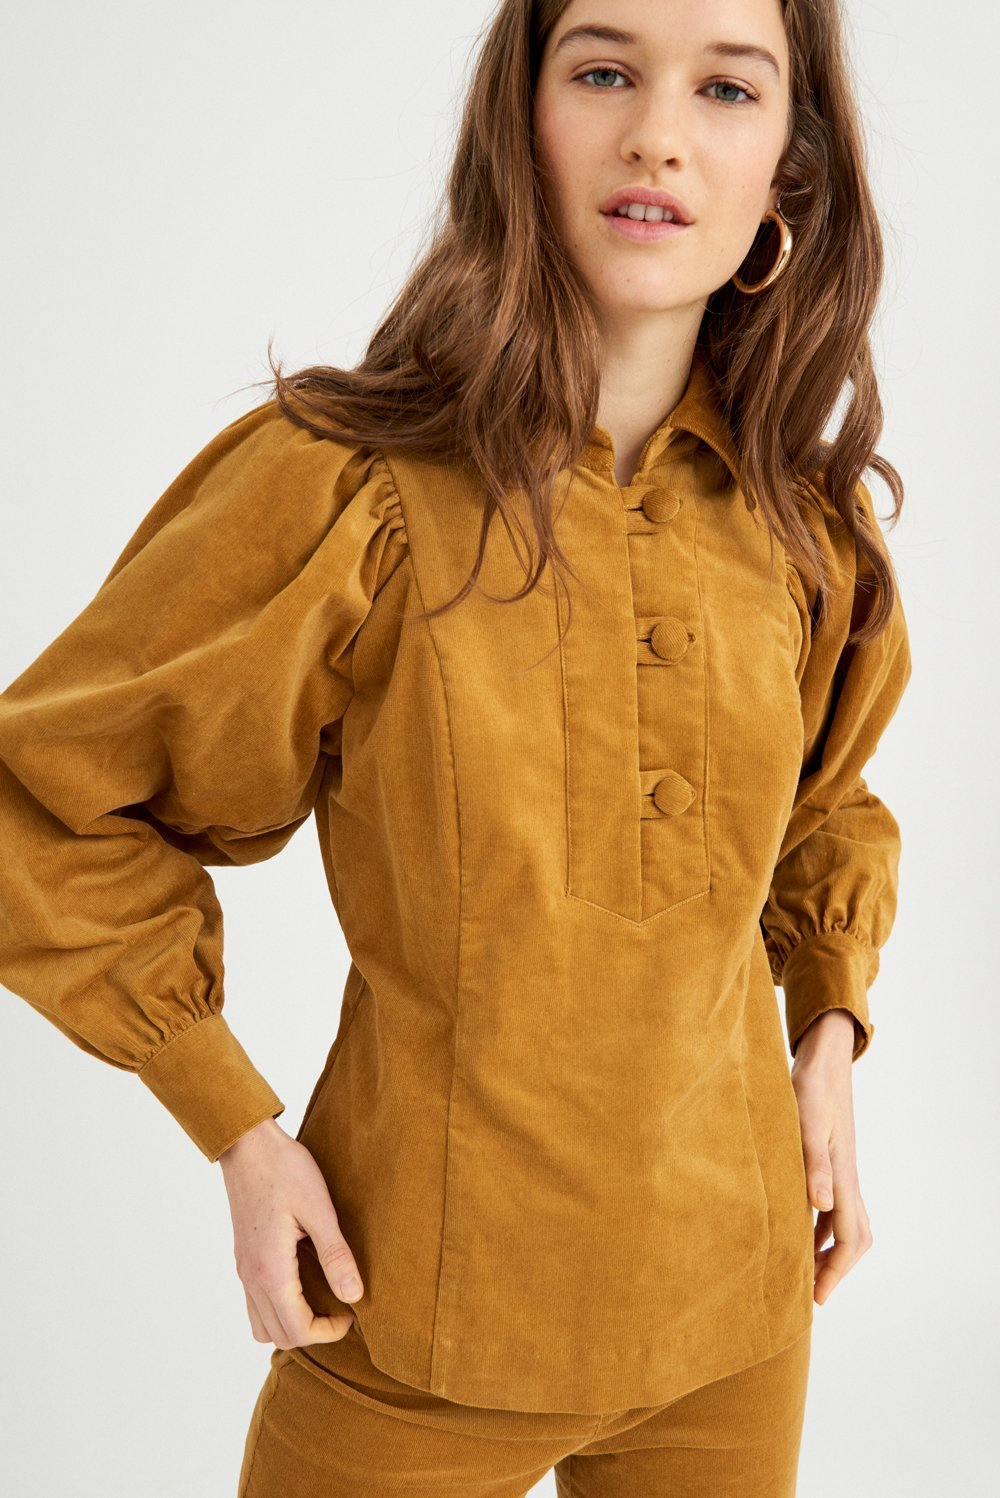 Blouse velours Mona - Ocre - Antik Batik (photo)